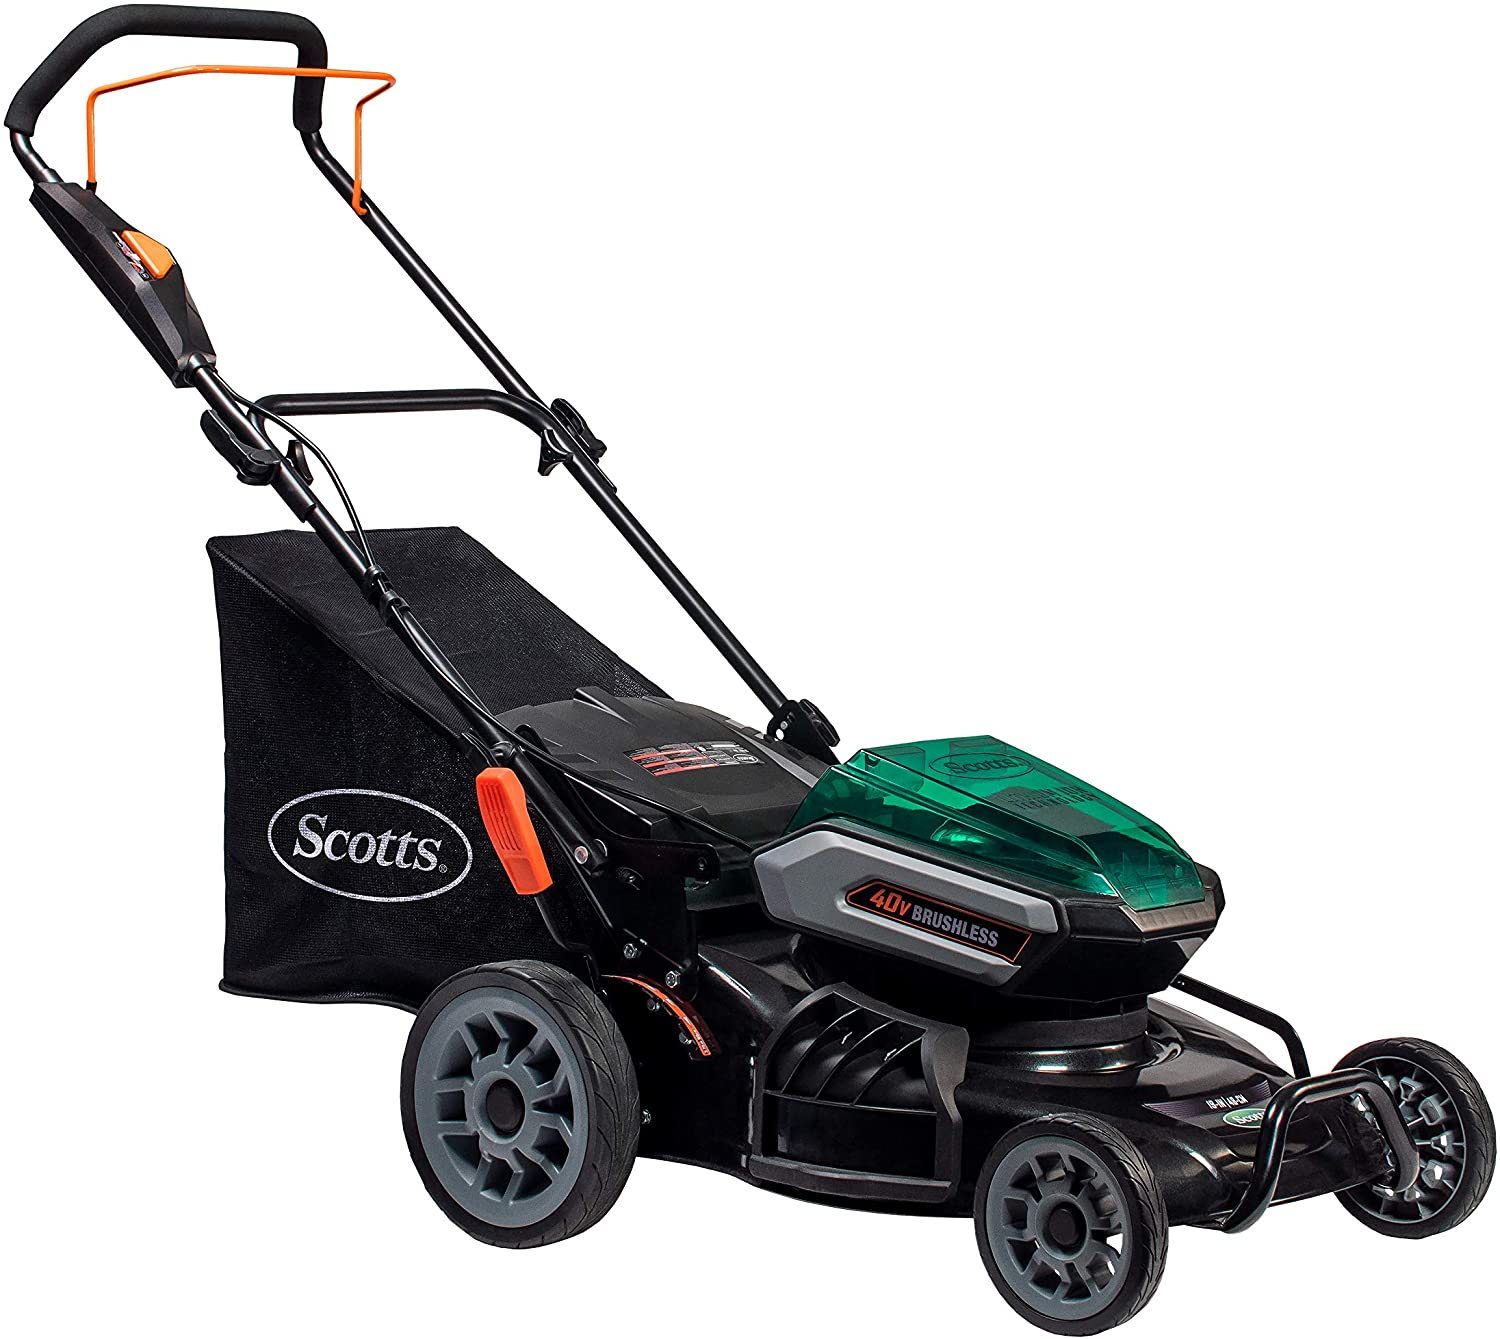 Lawn Mower For 3 Acres